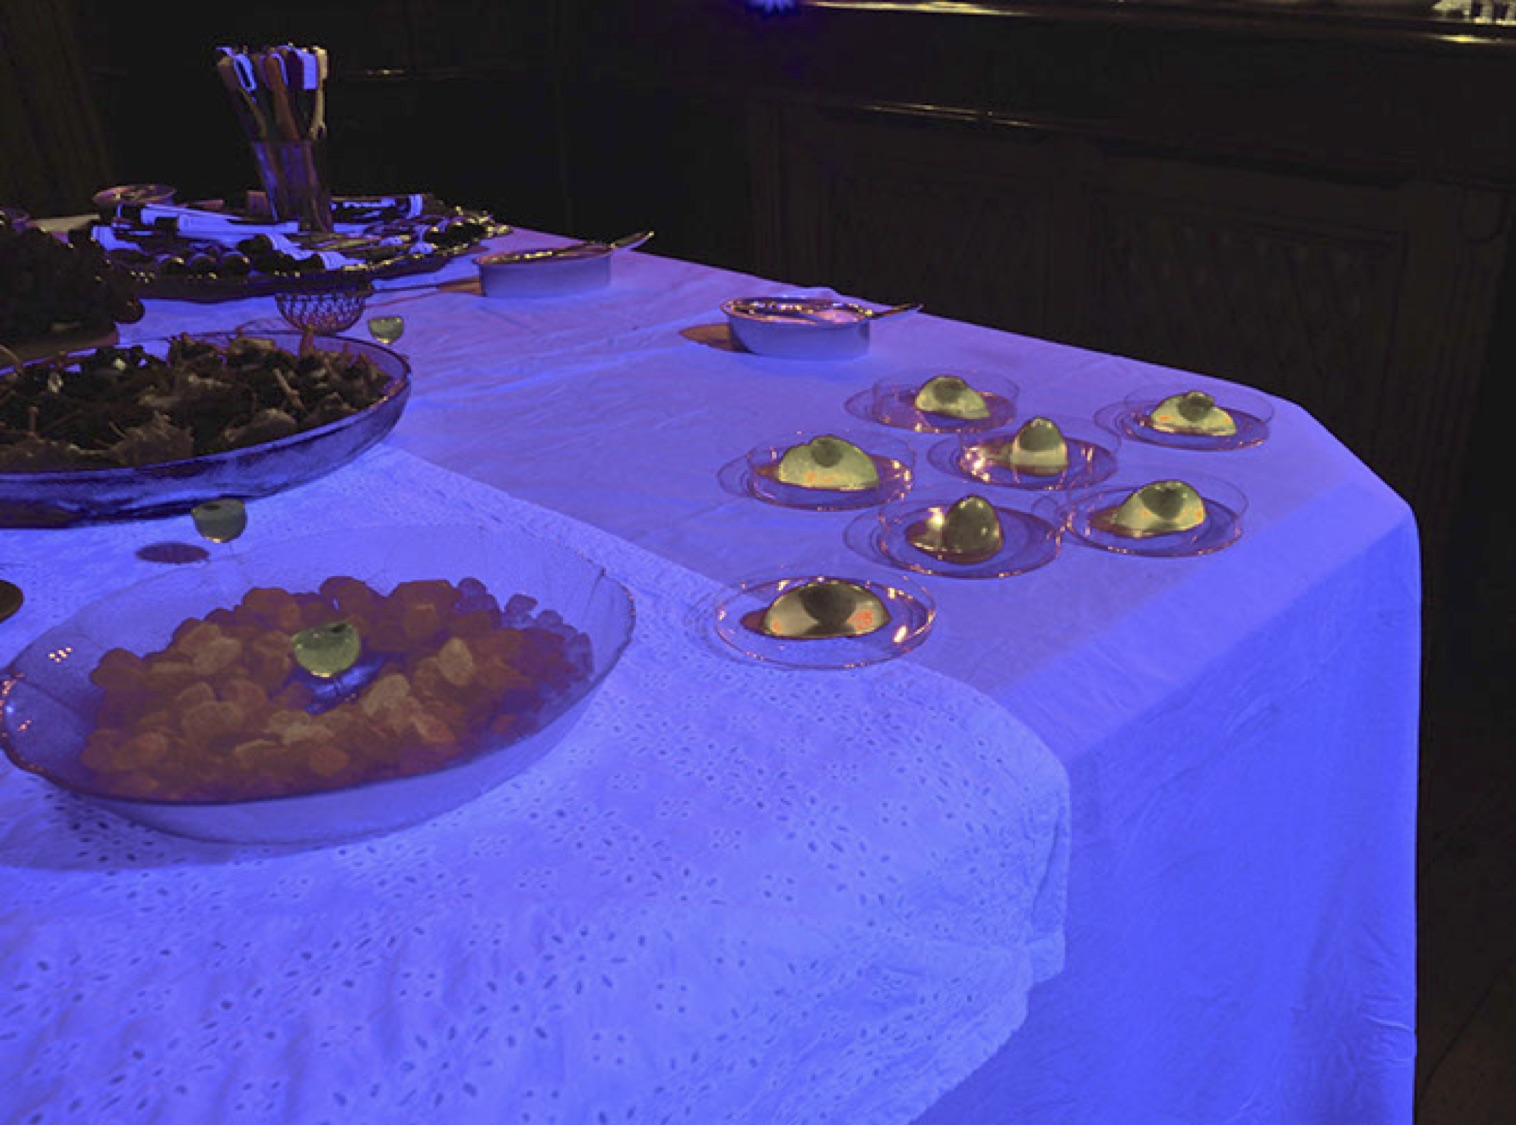 Glow in the dark jelly, image from presentation of work by The Domestic Godless